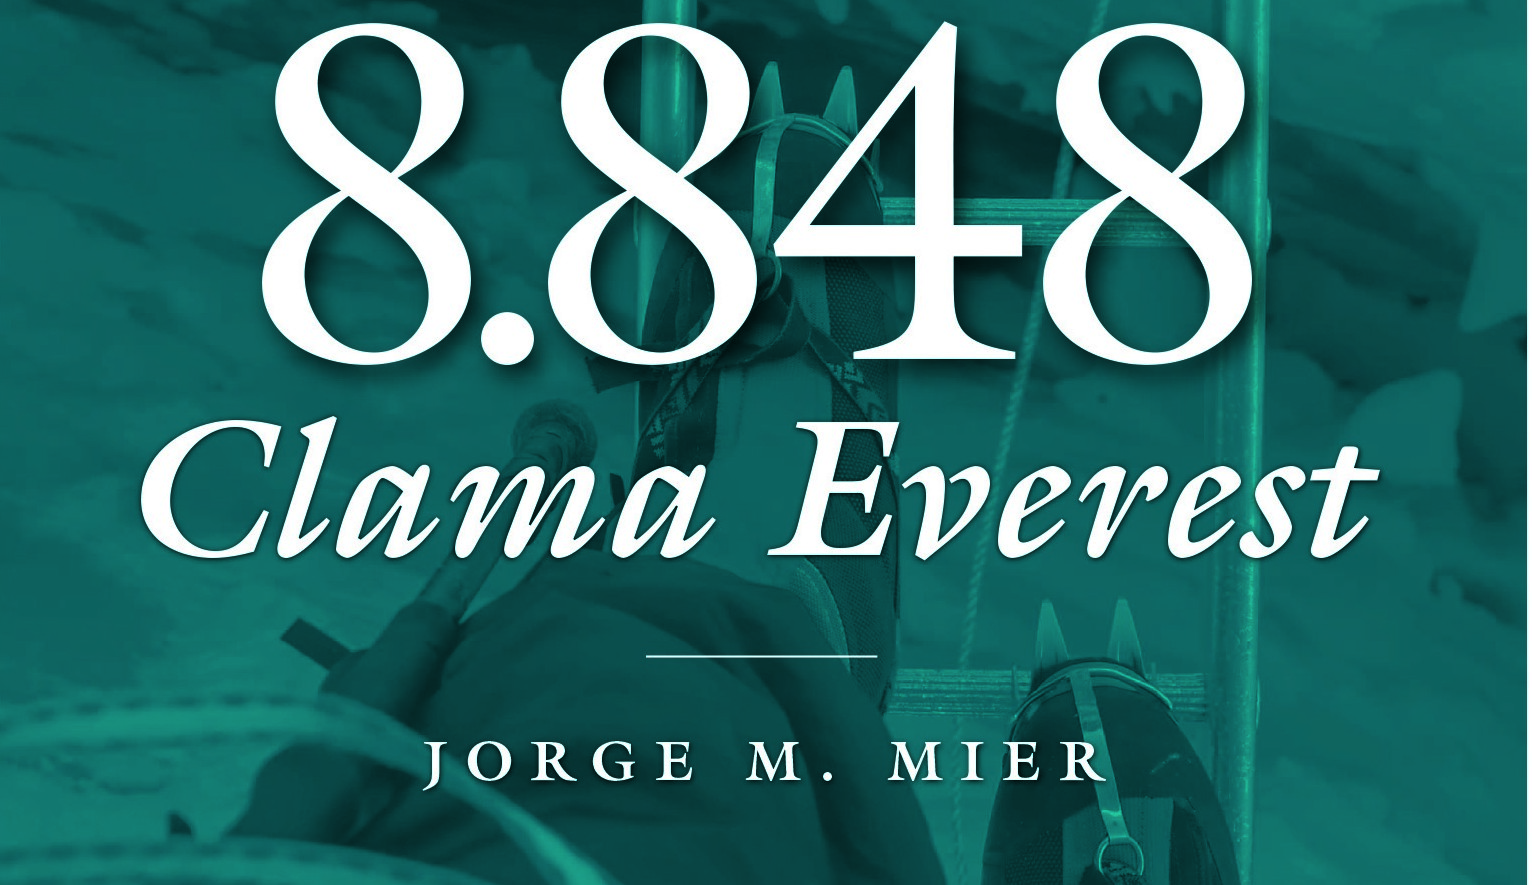 8848 Clama Everest, ¡ya está aquí!